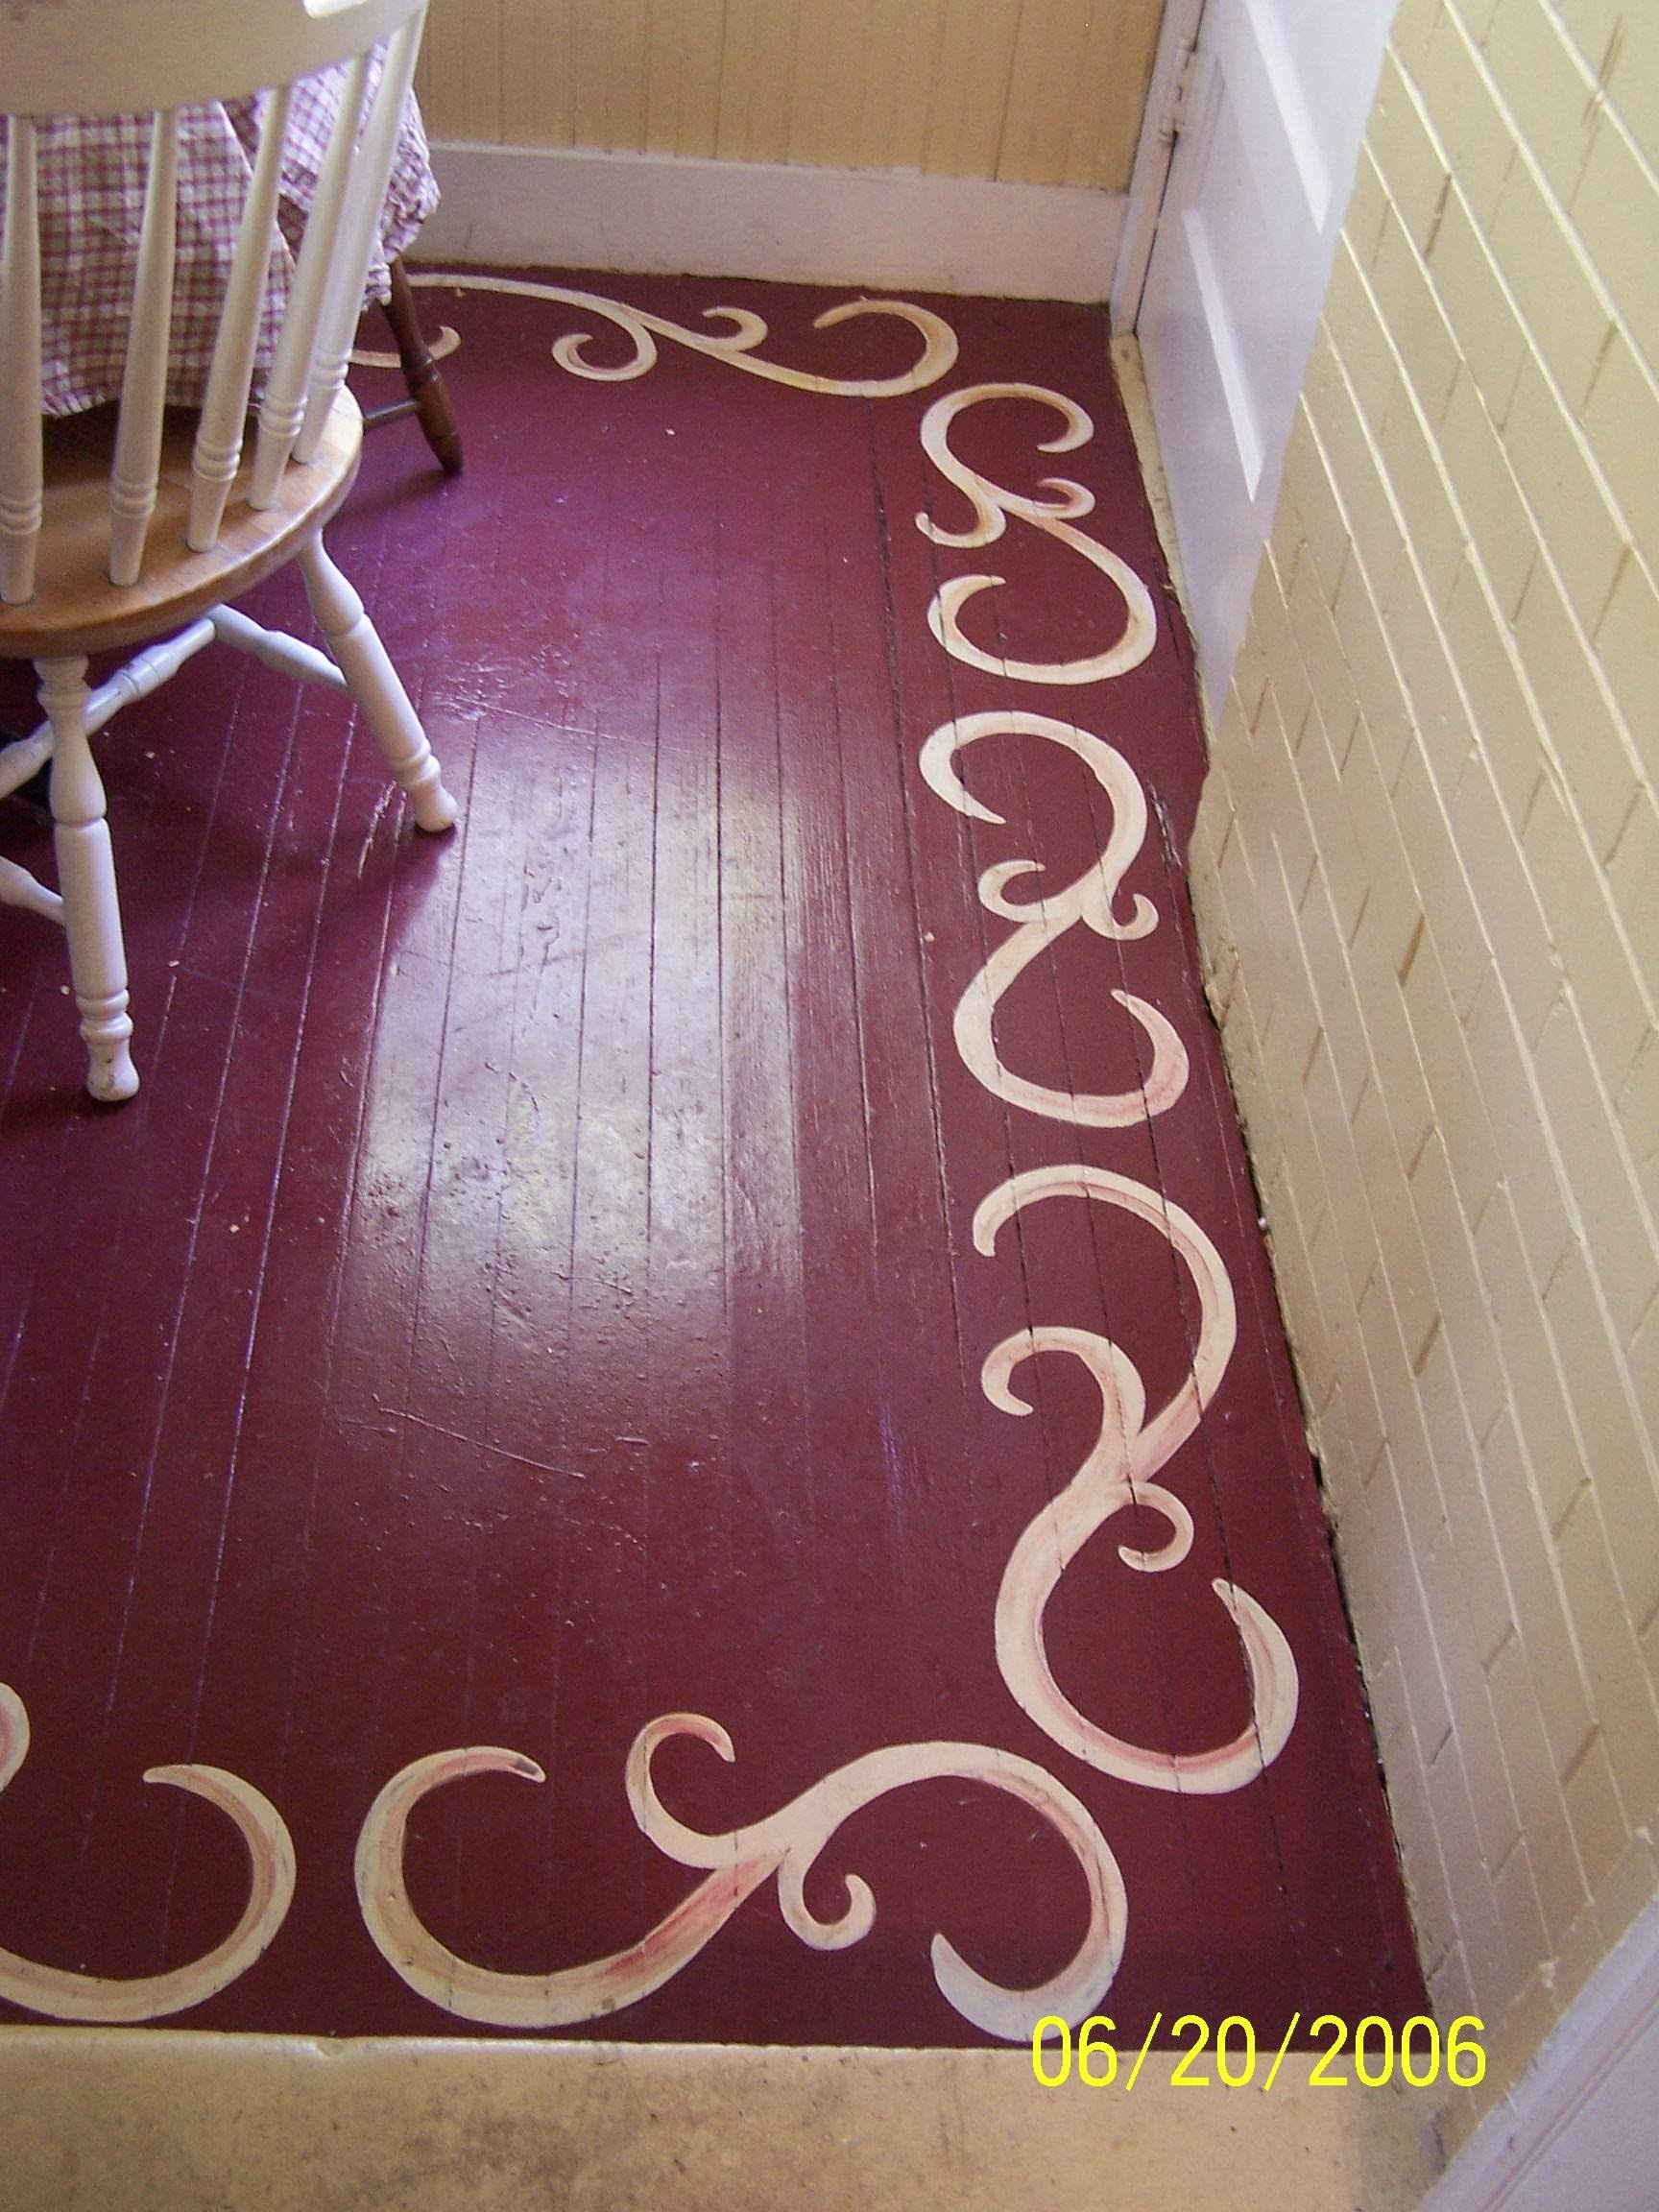 Muralsfloorfurniture Haleyhalldesigns